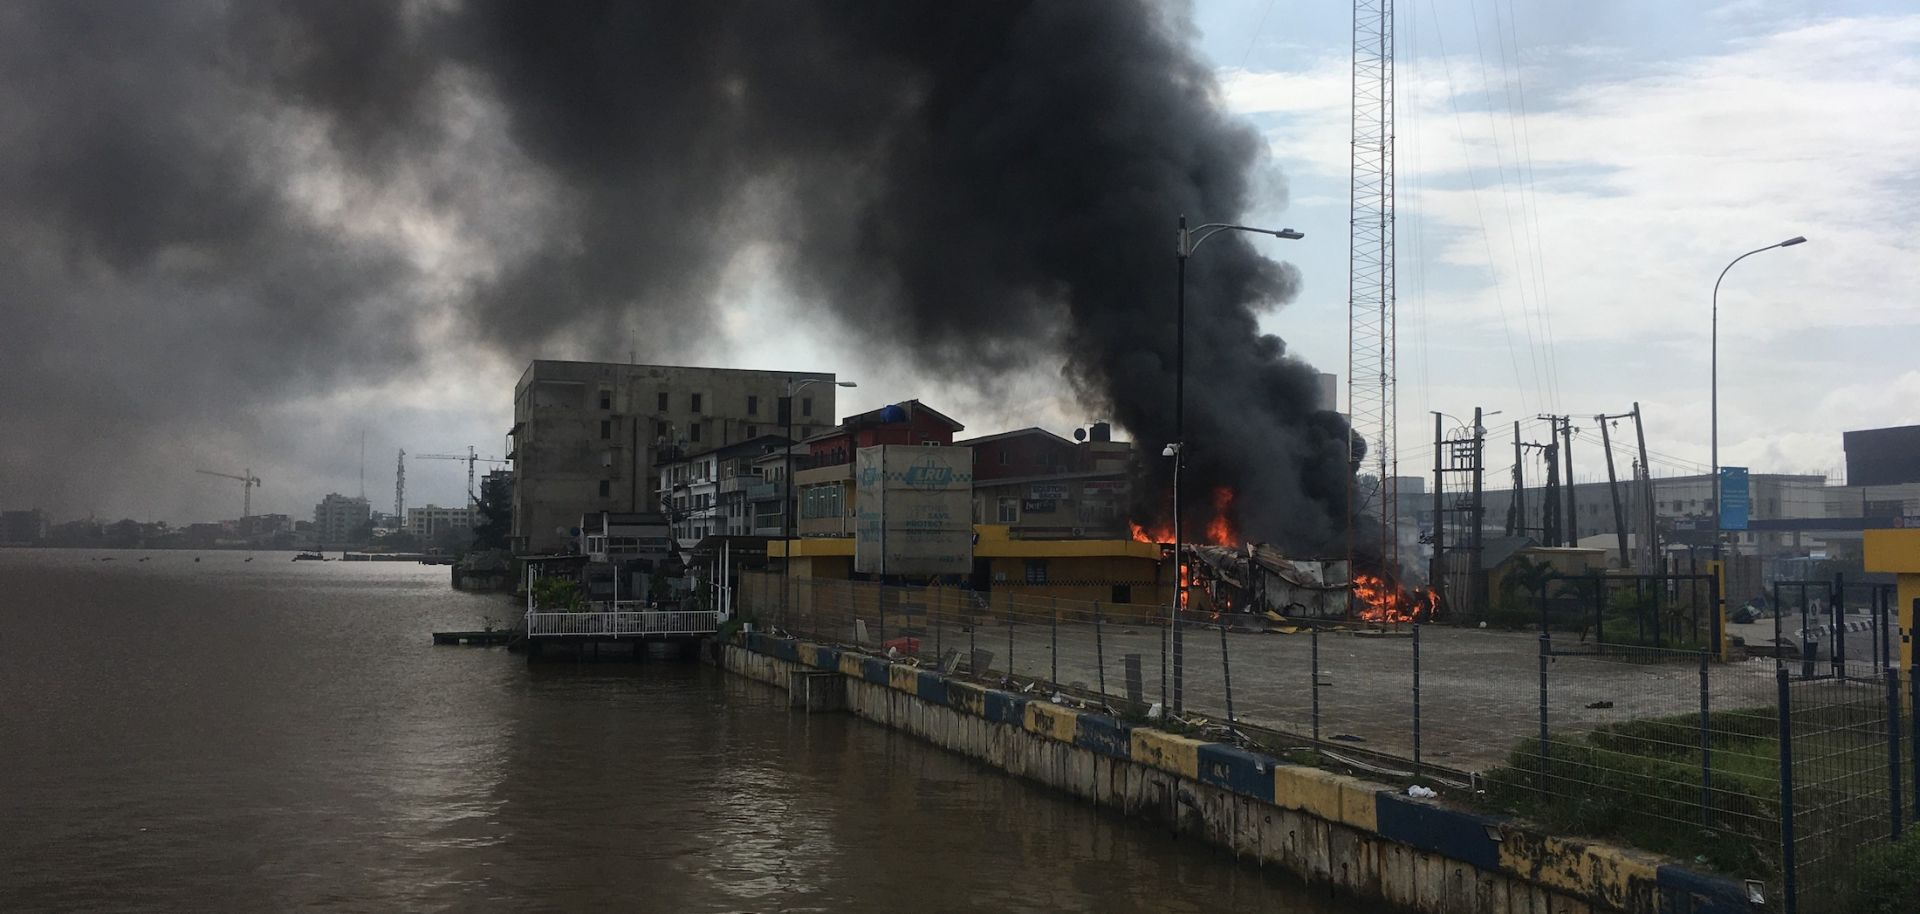 A building remains on fire in Lekki, Nigeria, on Oct. 21, 2020, after #EndSARS protests escalated into violent clashes with police the previous night.